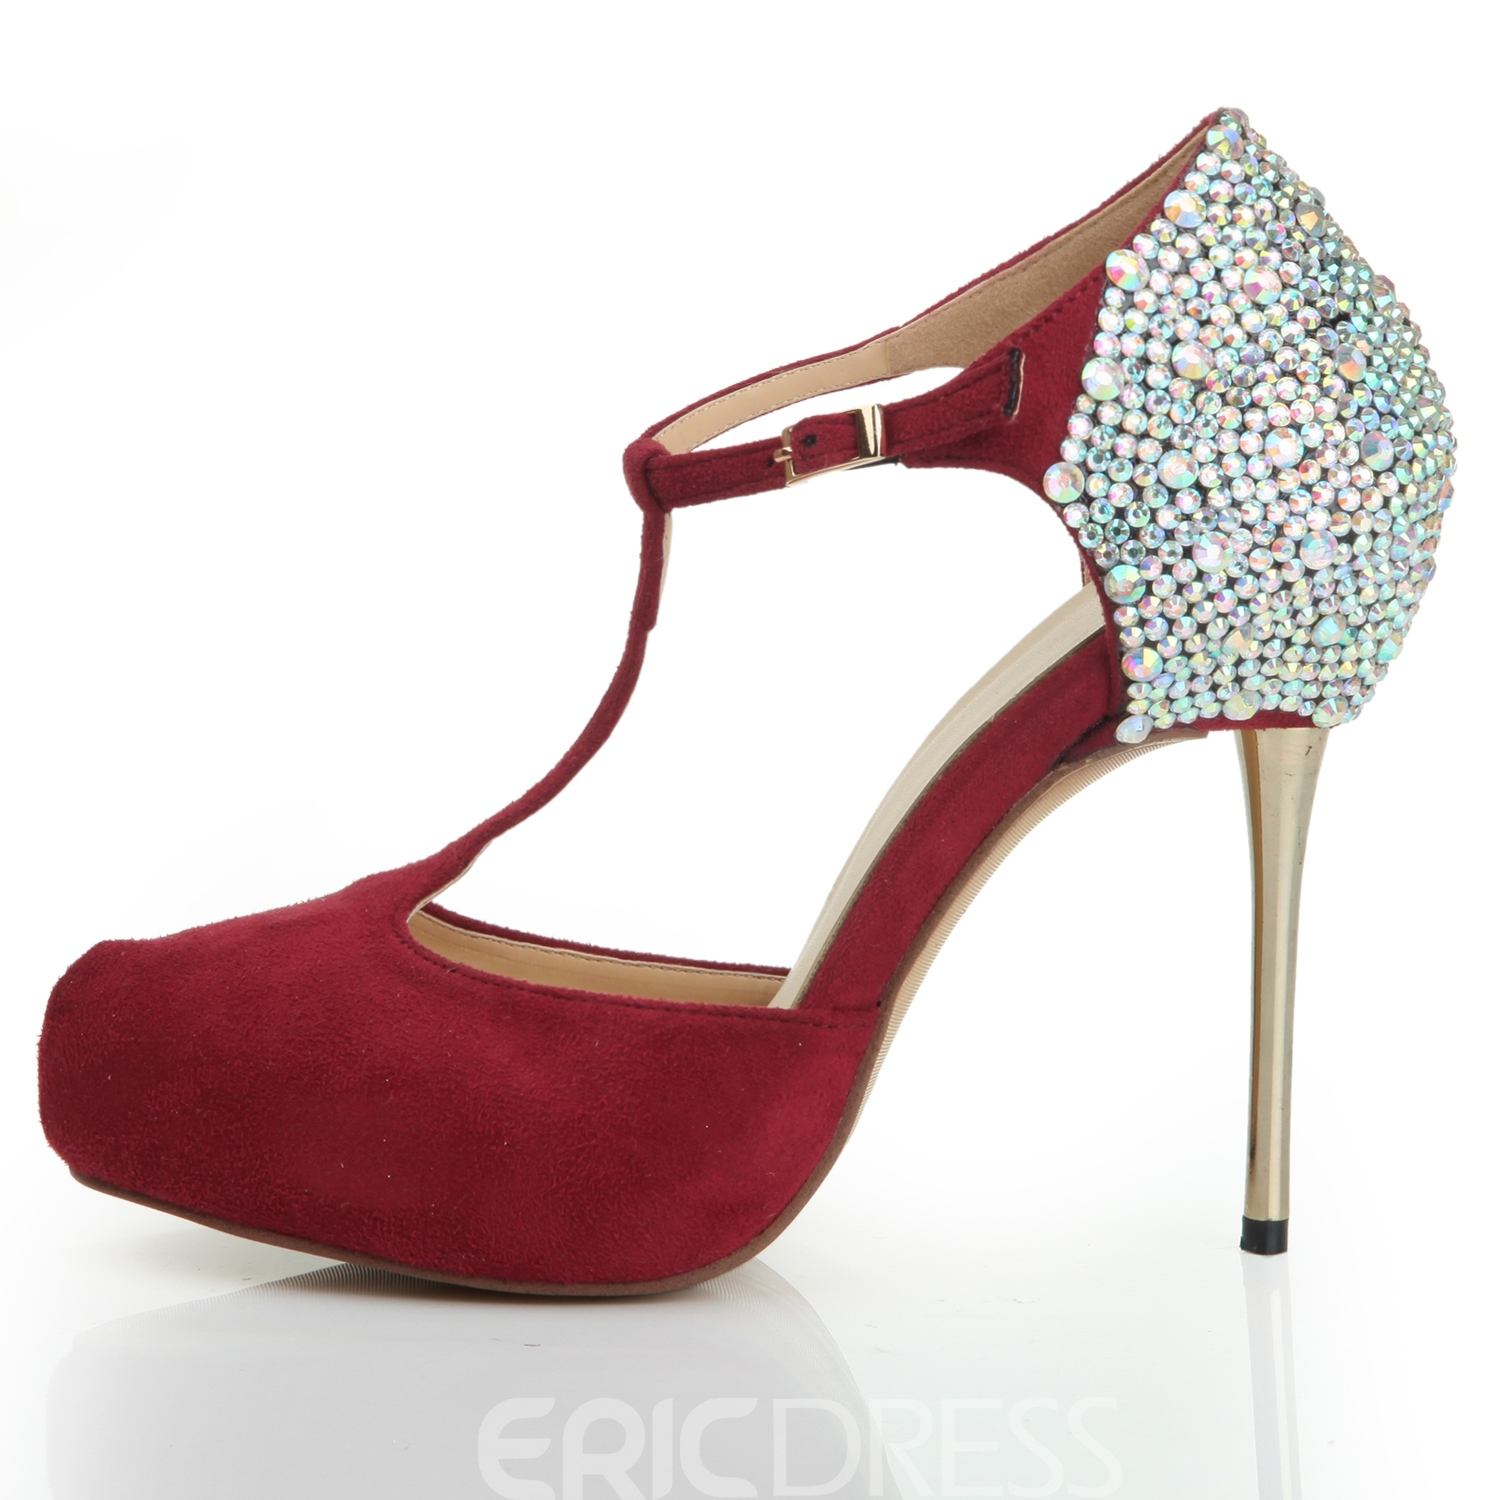 Charming Color Shining Stiletto Heels With Strap